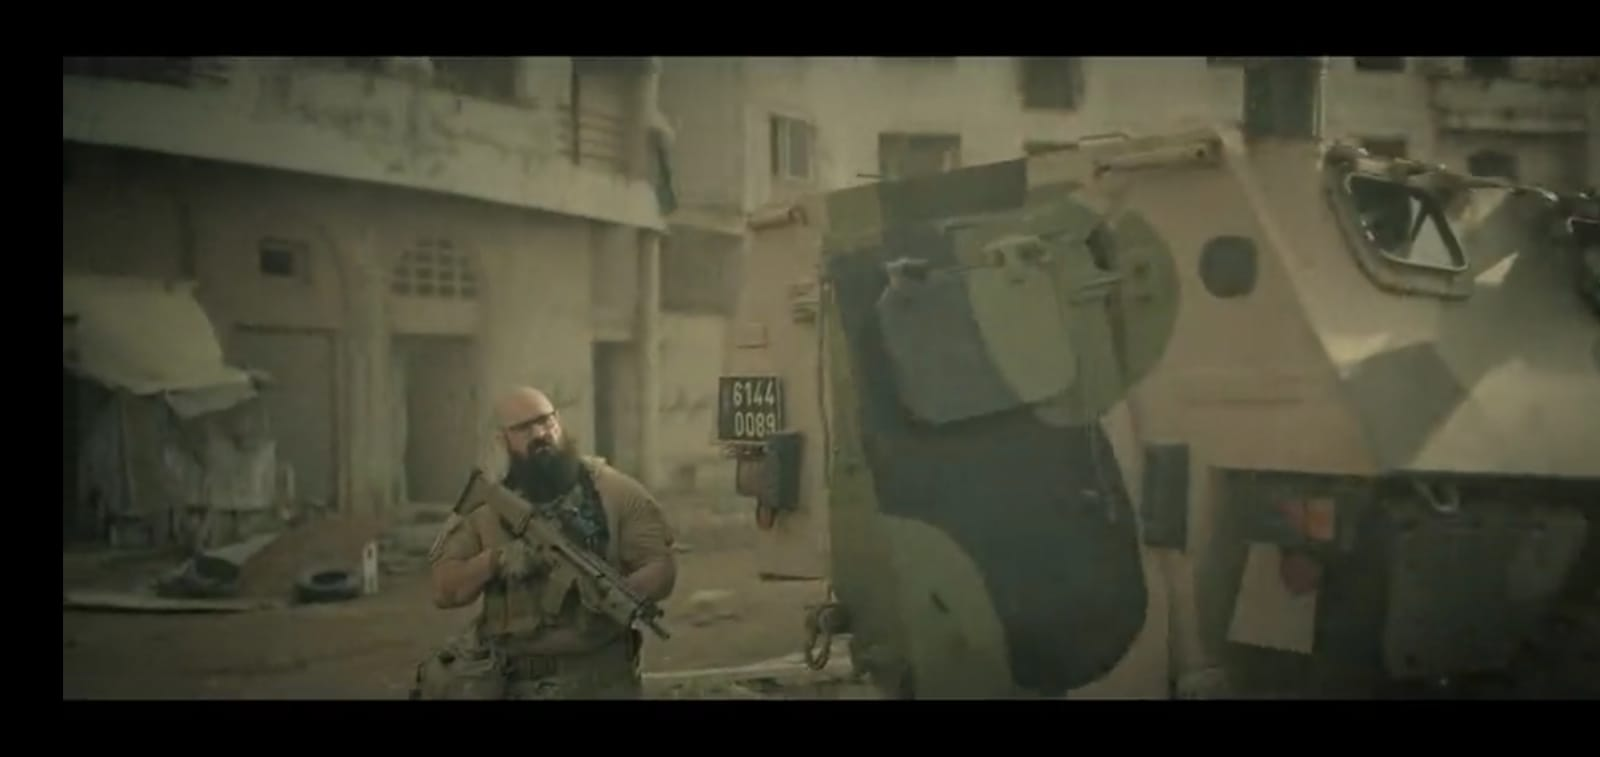 Les FAR et le Cinema / Moroccan Armed Forces in Movies - Page 11 311